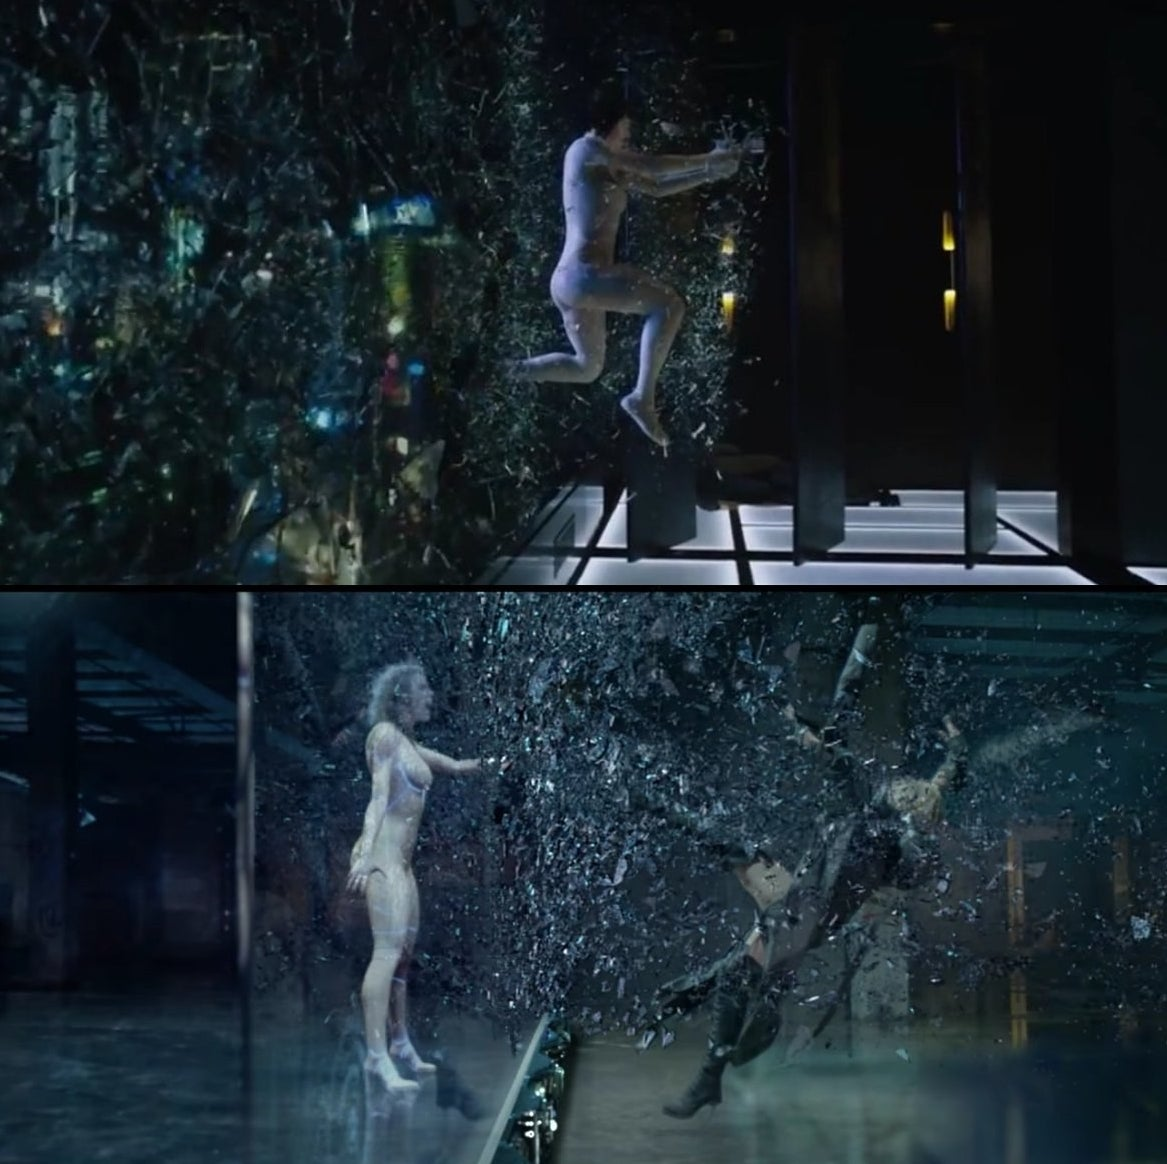 Above you see a image from Ghost in the Shell (top) and Swift's new video (bottom). BuzzFeed News has reached out to Swift's publicists, as well as a representative for Kahn, to learn more about the inspiration behind the video.